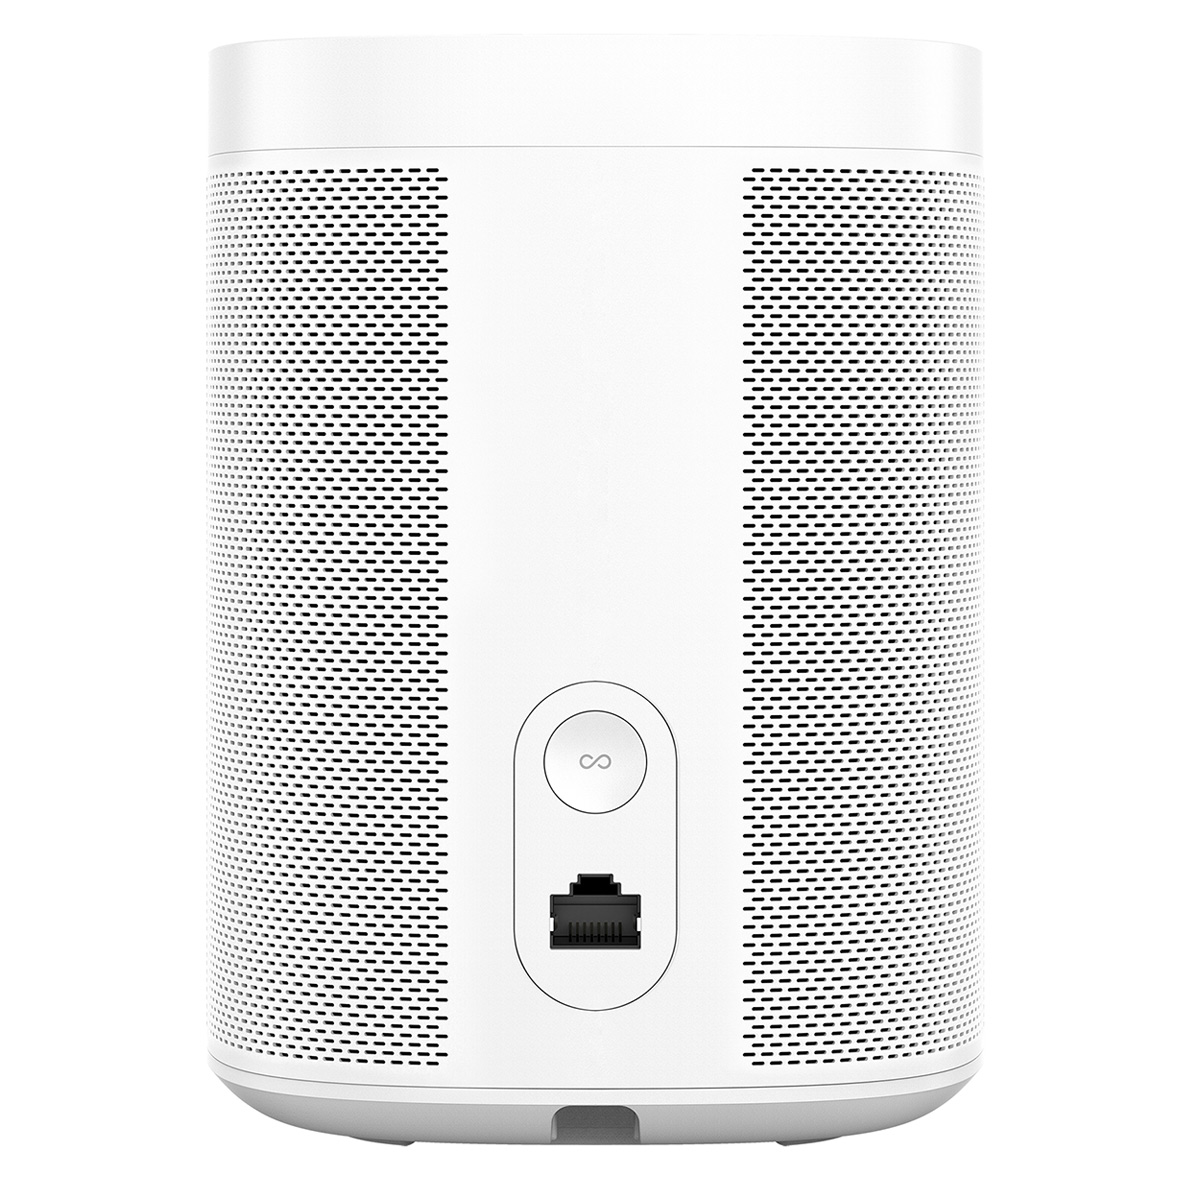 Sonos-Two-Room-Set-with-Sonos-One-Gen-2-Smart-Speaker-with-Alexa-Voice-Control thumbnail 17